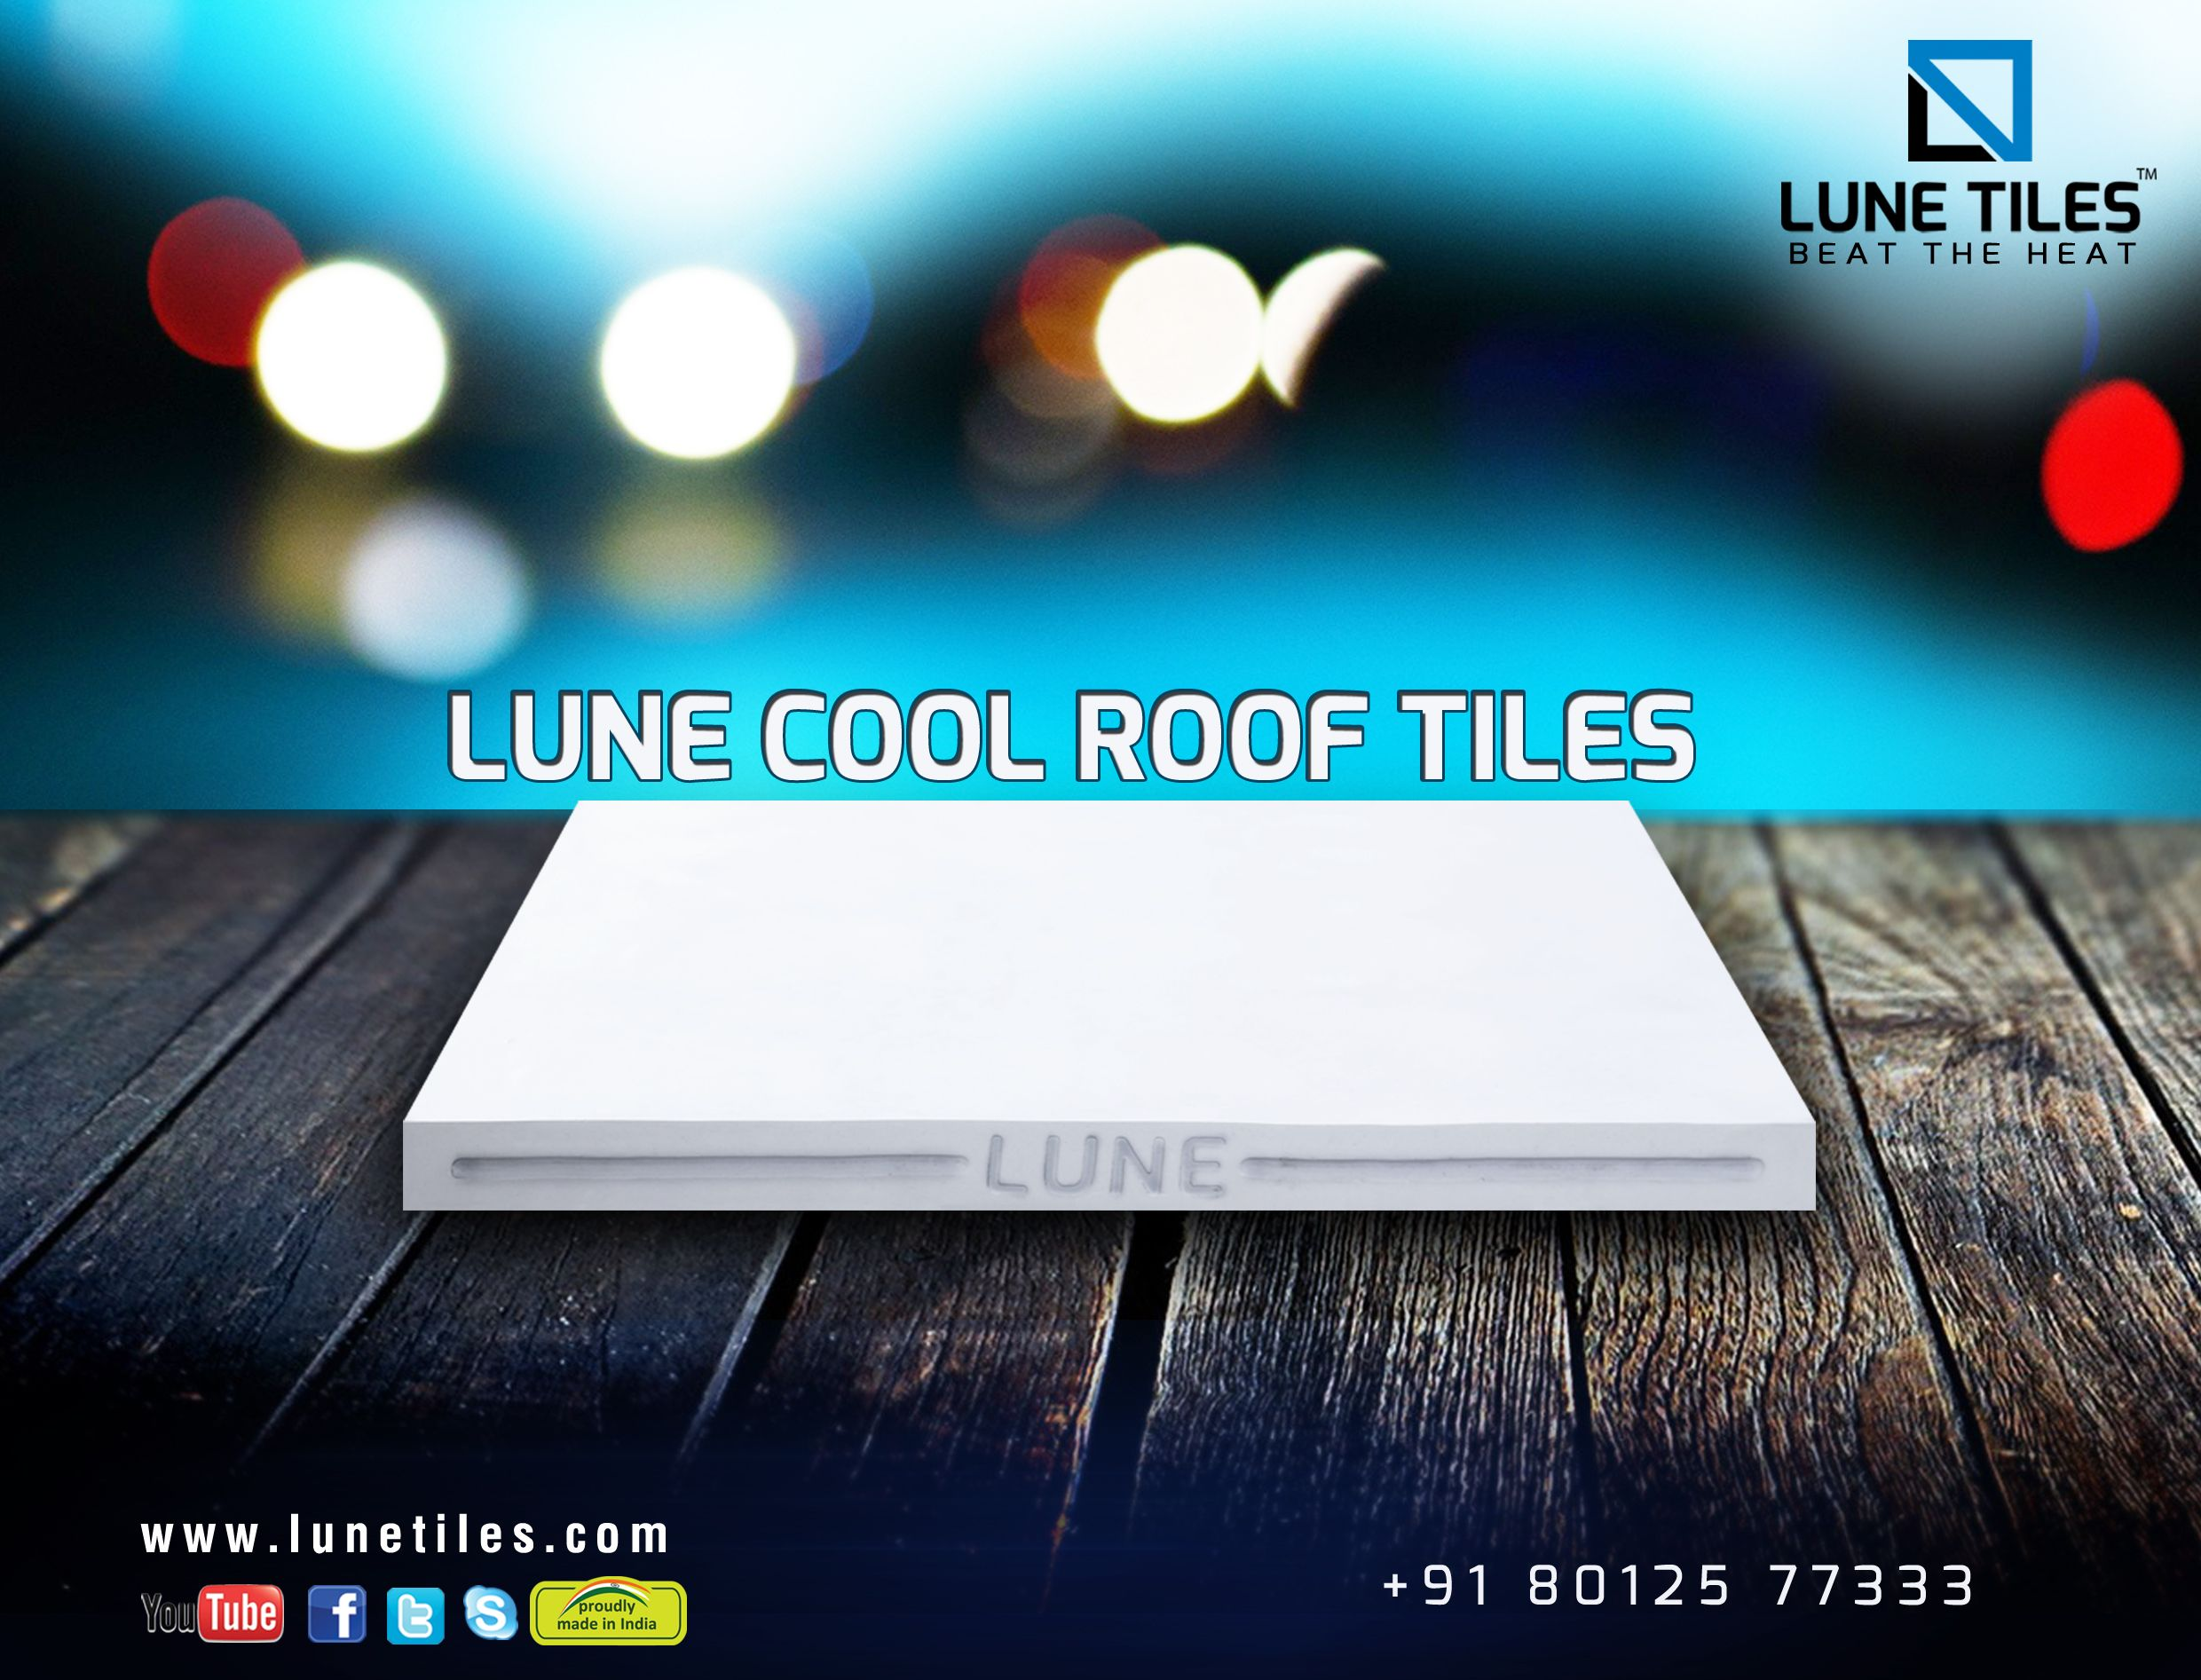 Pin by Lune Cool Roof Tiles on https://lunetiles com/